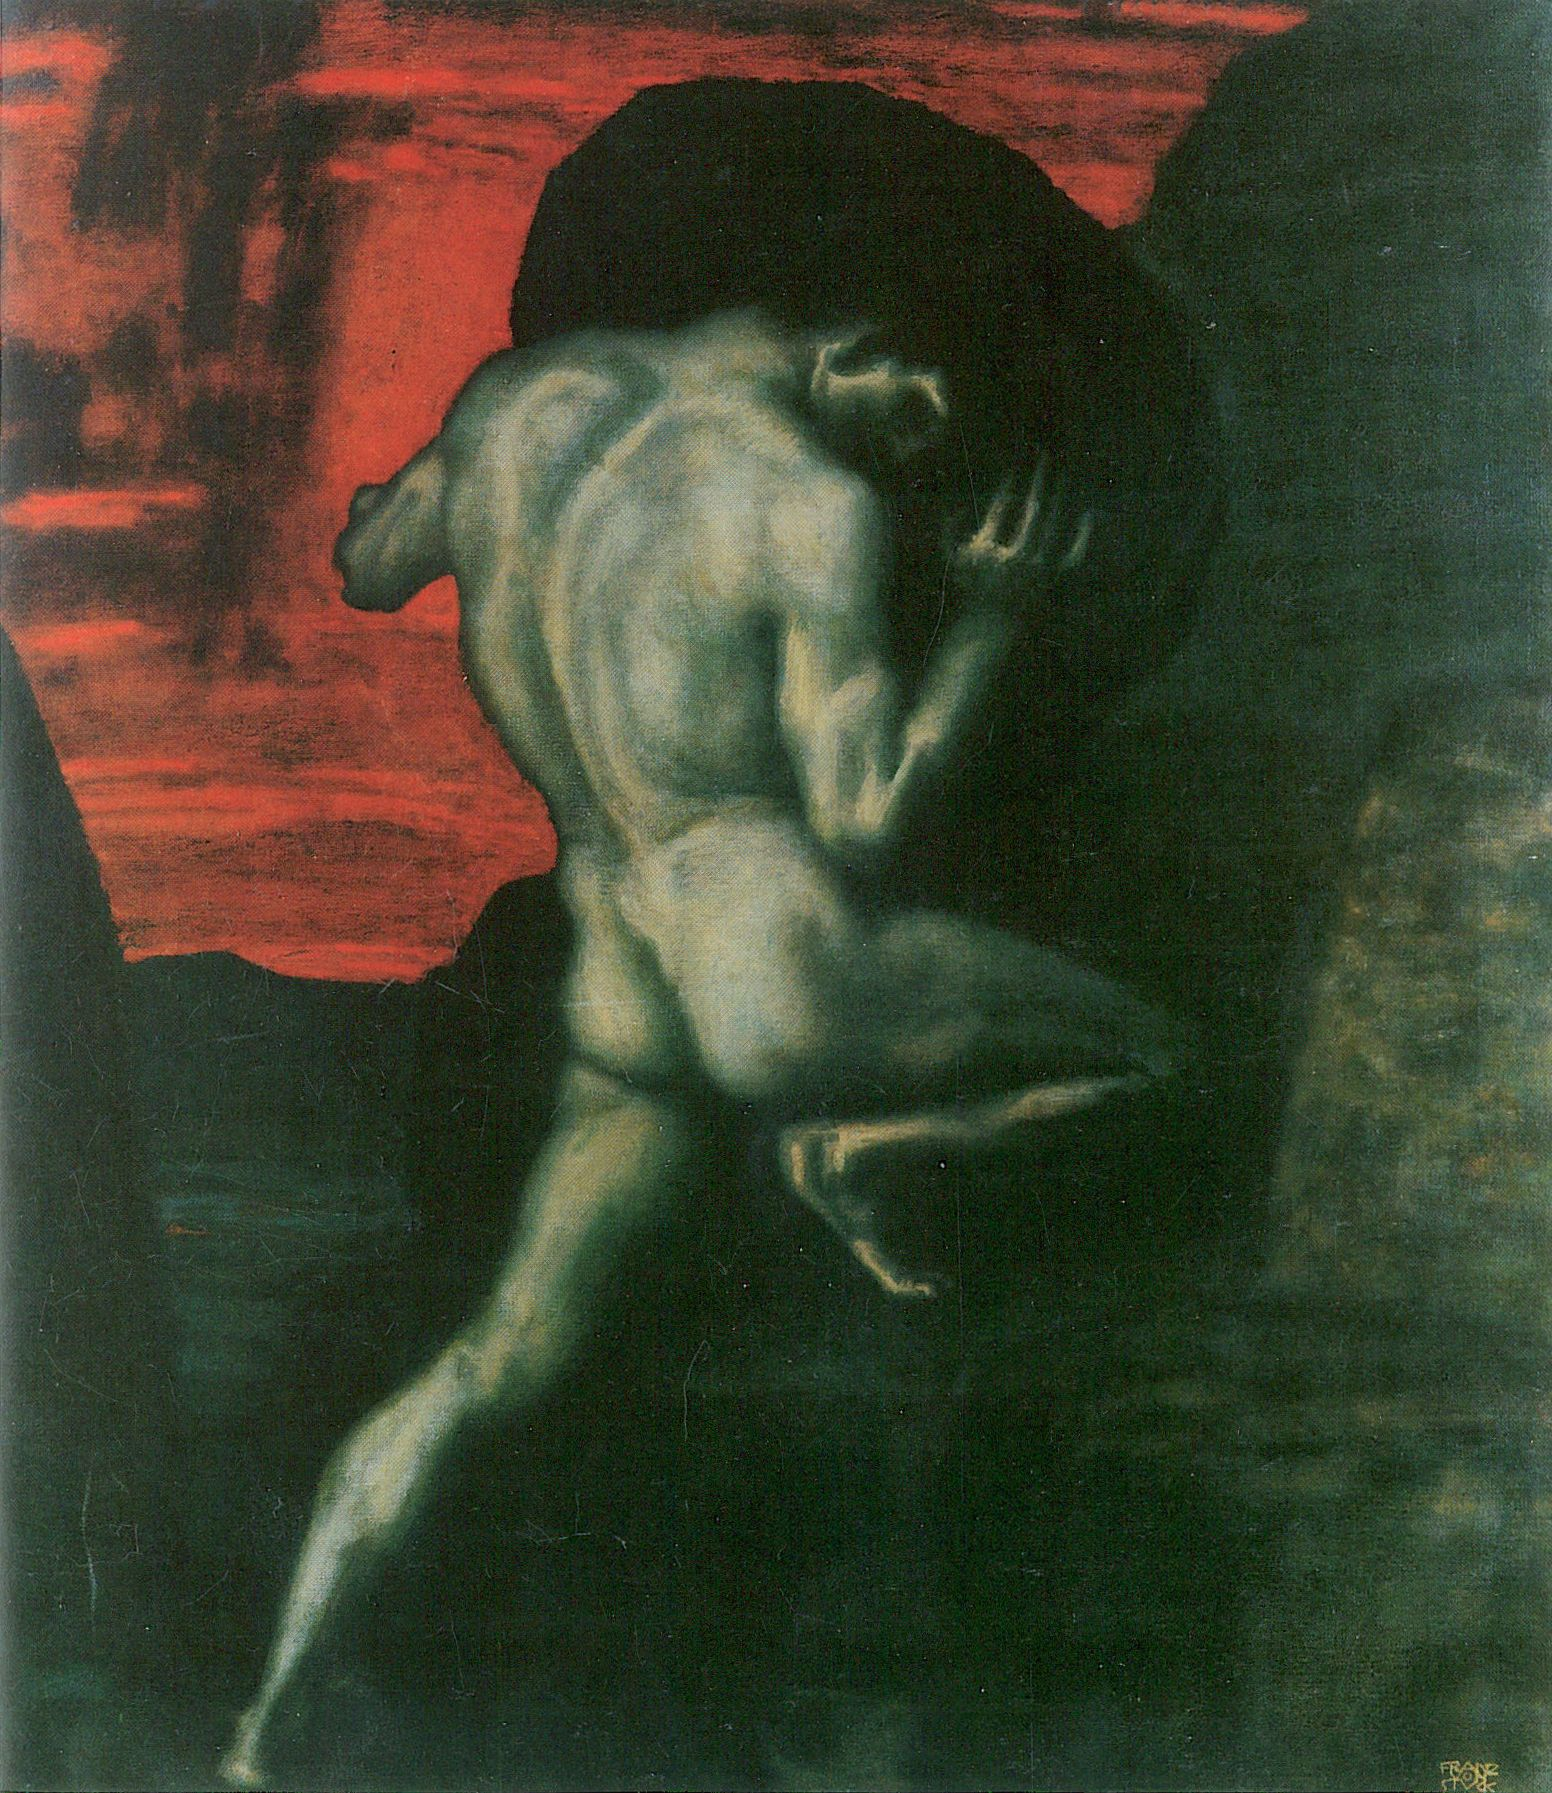 File:Sisyphus by von Stuck.jpg - Wikimedia Commons